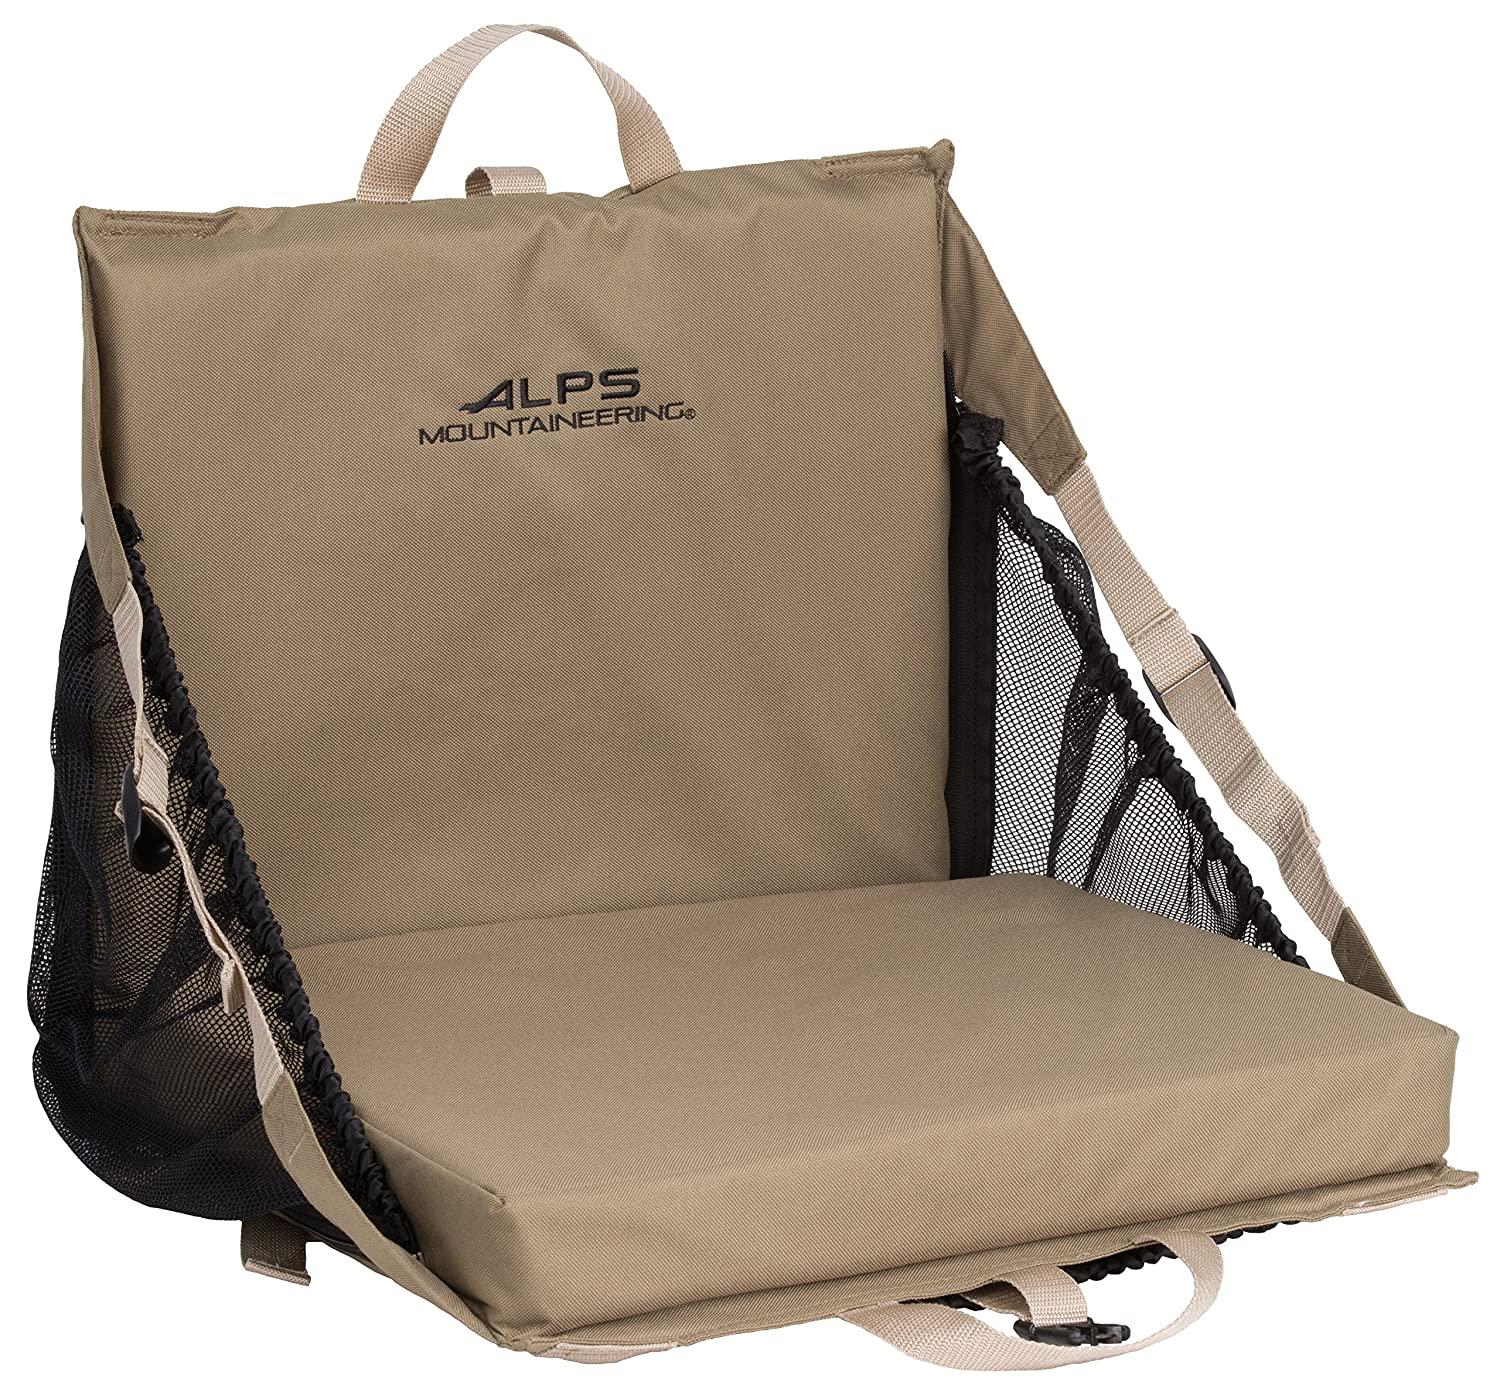 Alps Mountaineering Explorer+Xt Backpack Chair New